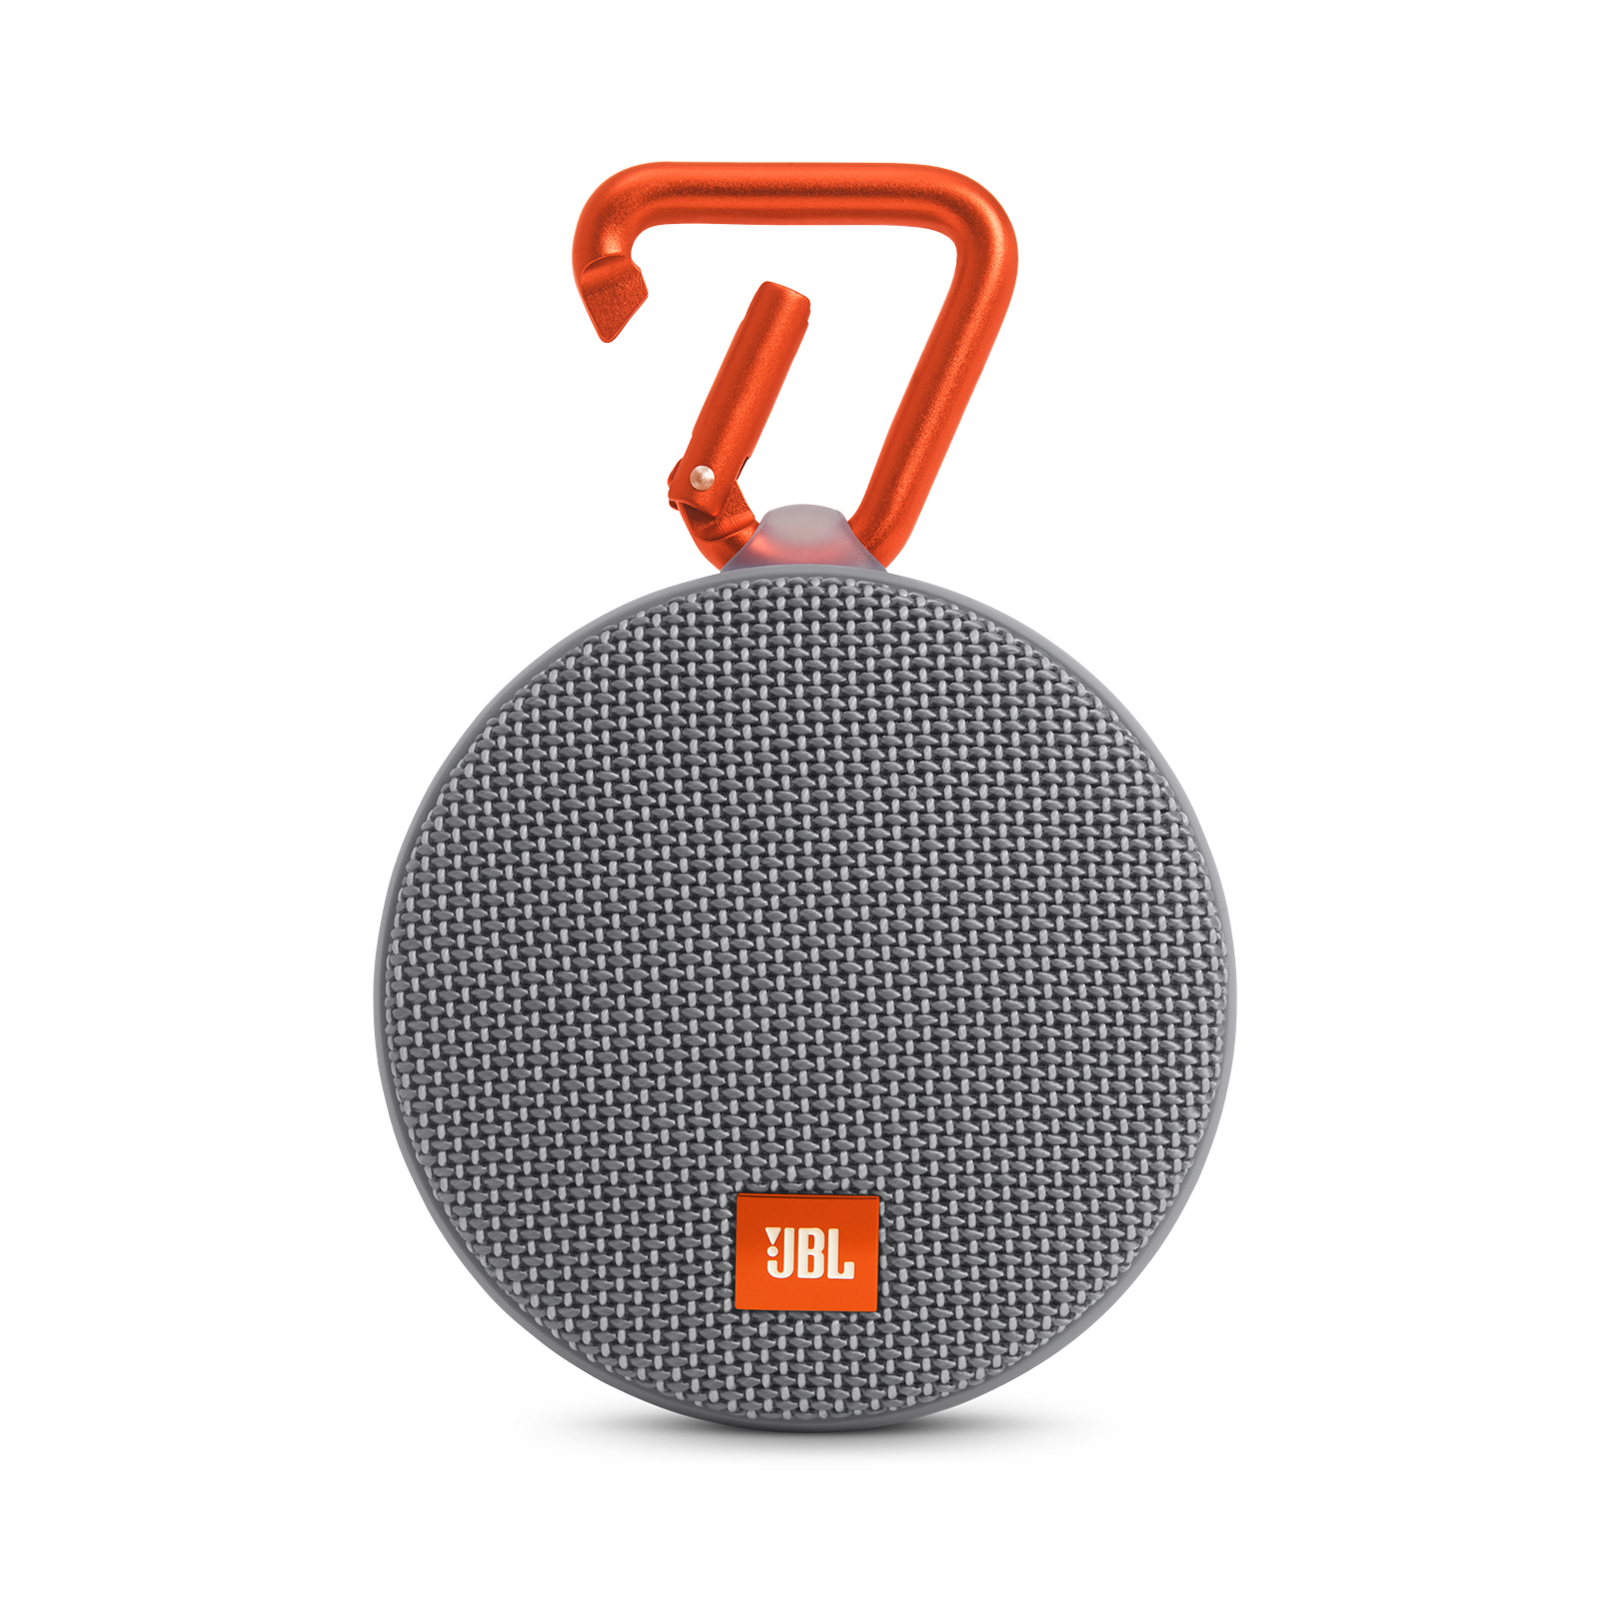 JBL JBLCLIP2GRYEU CLIP 2 MONO PORTABLE SPEAKER 3W GREY,ORANGE